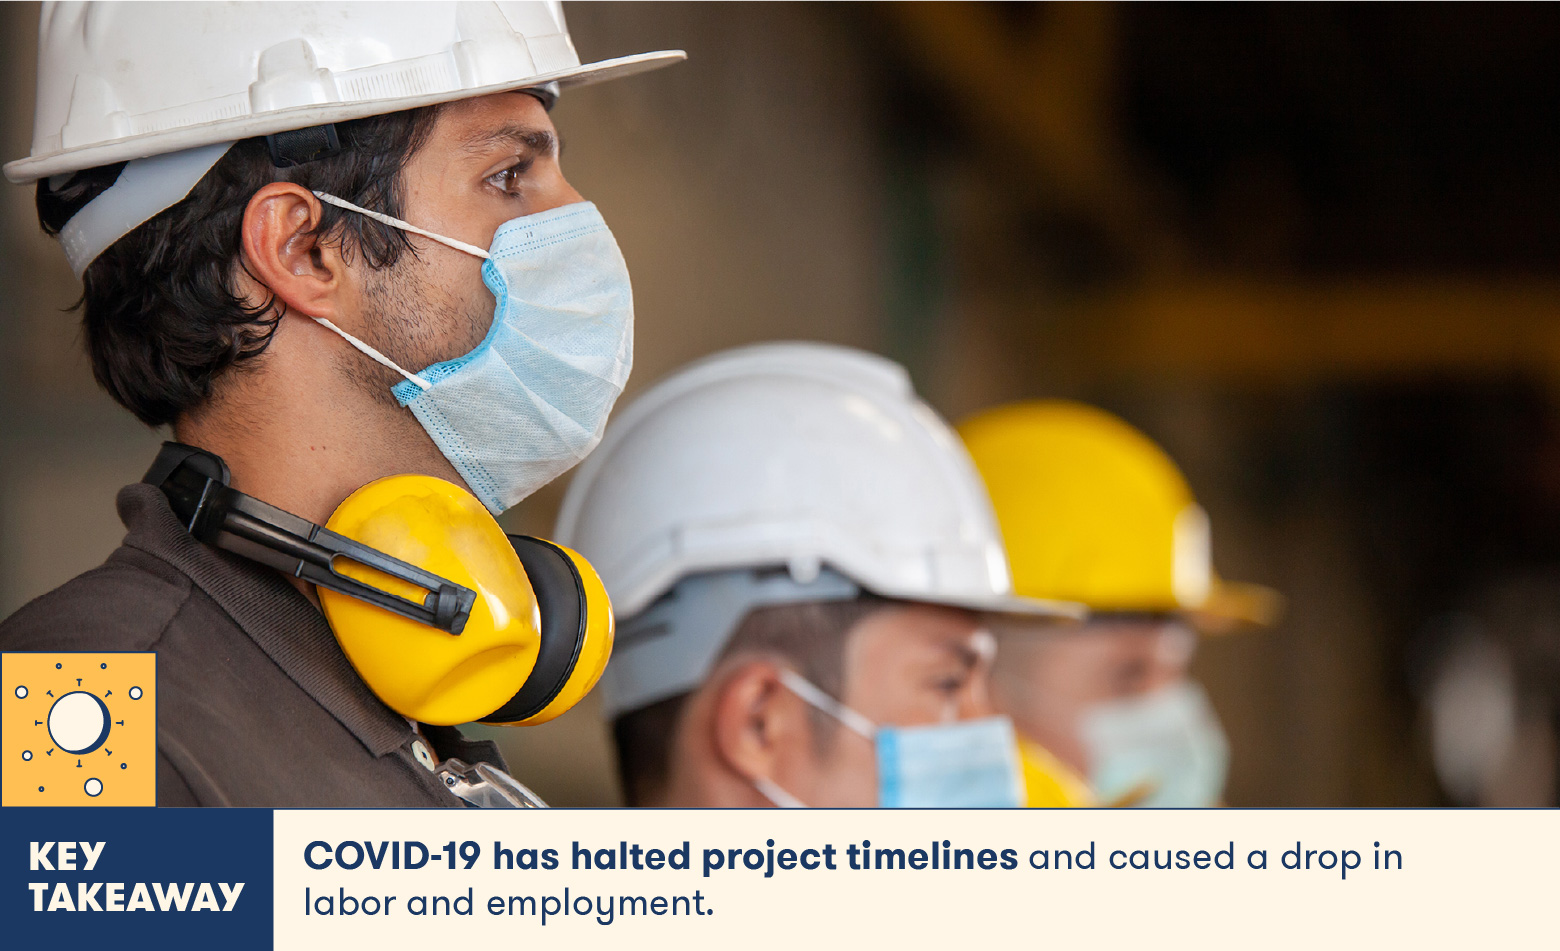 COVID has affected project deadlines